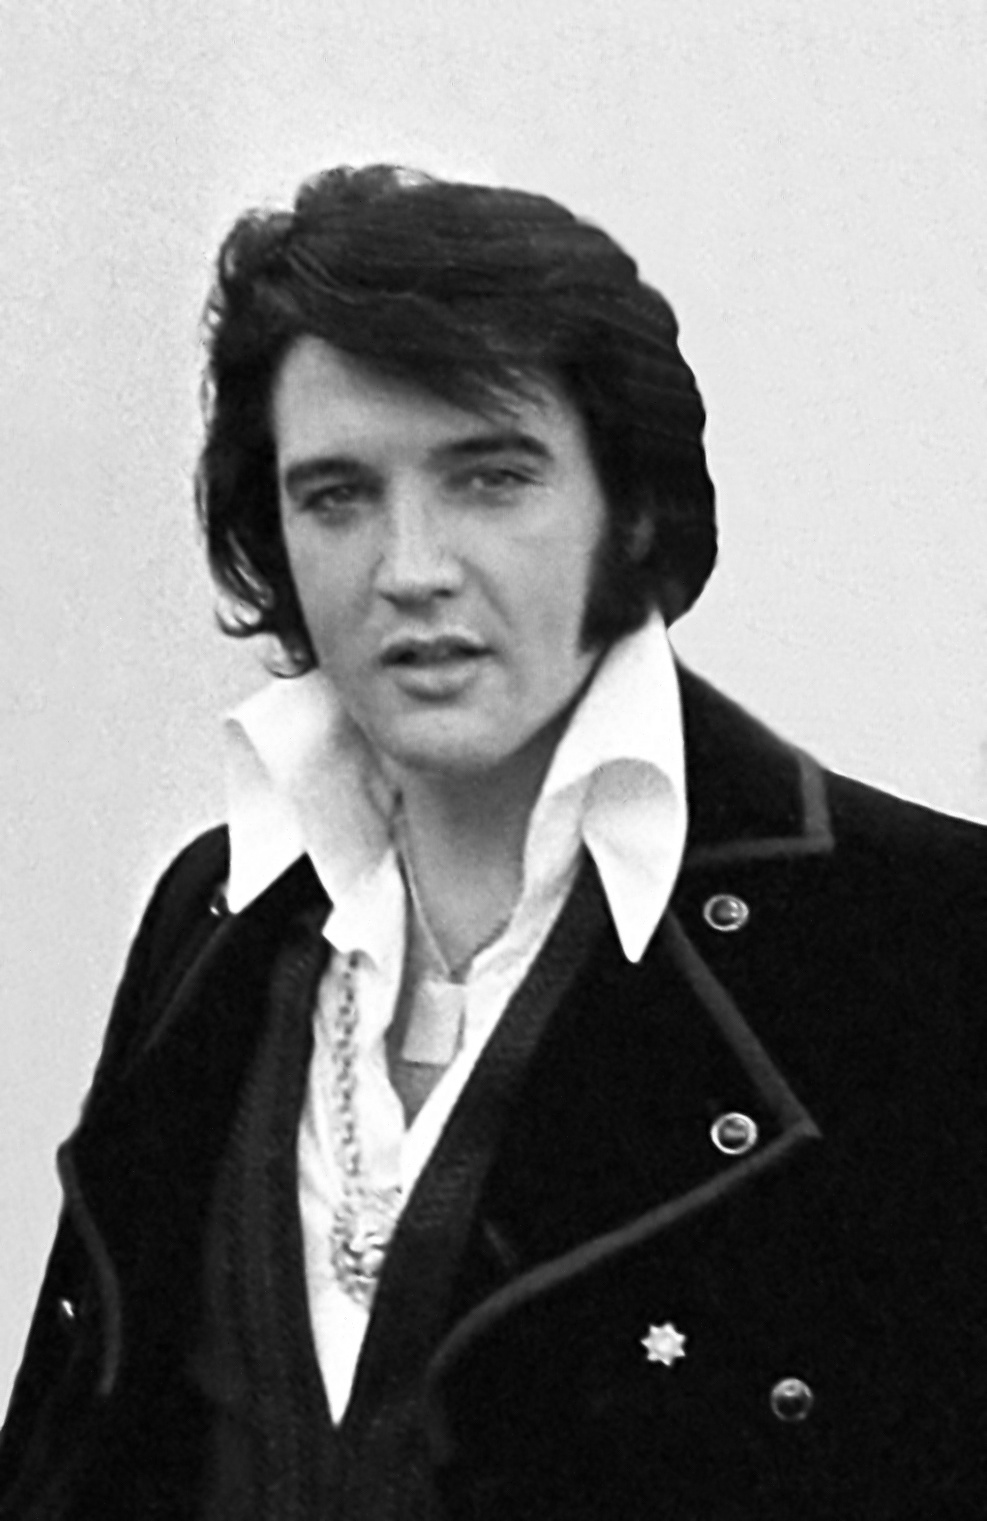 Description Elvis Presley 1970.jpg